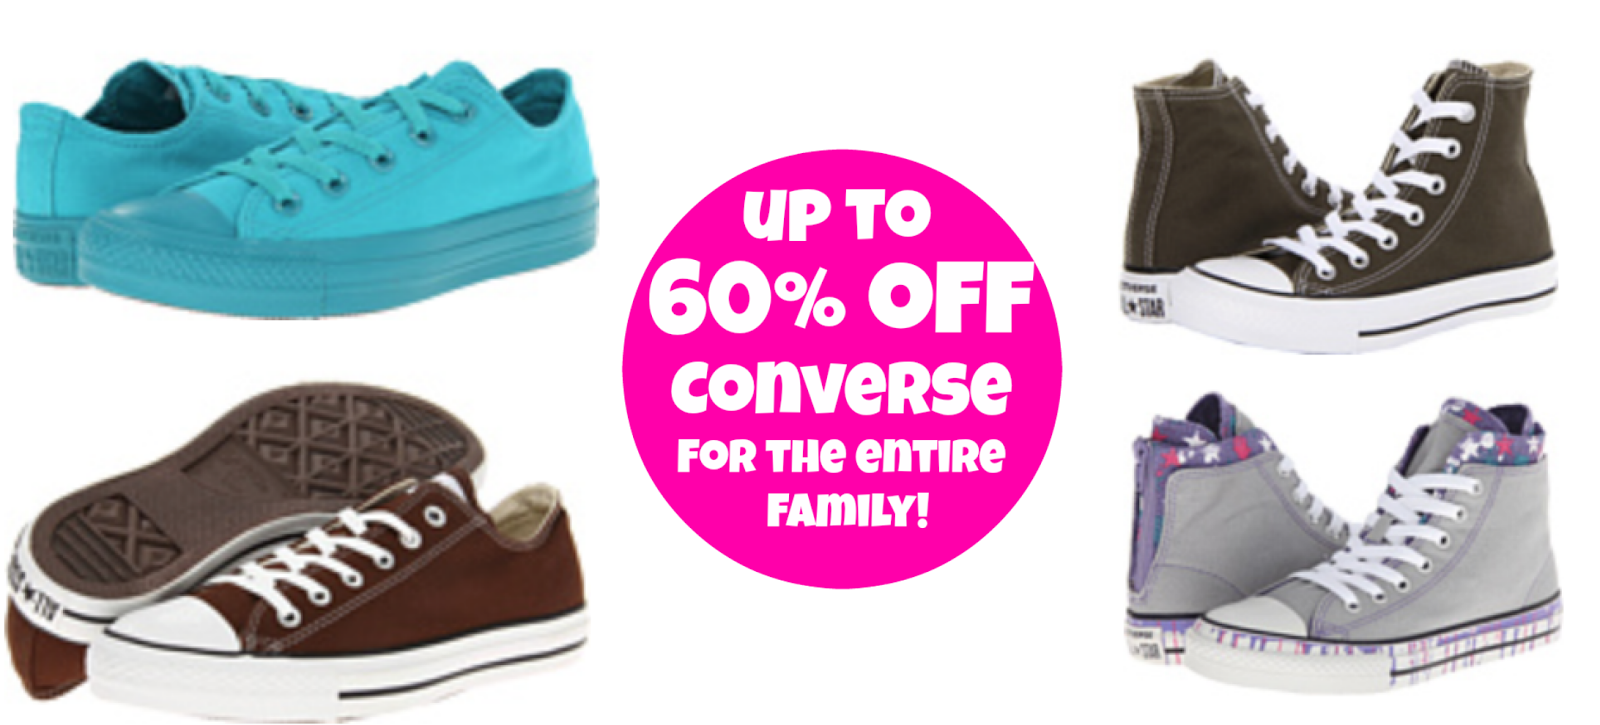 http://www.thebinderladies.com/2015/01/6pm-up-to-60-off-converse-shoes-for.html#.VMZNOIfduyM